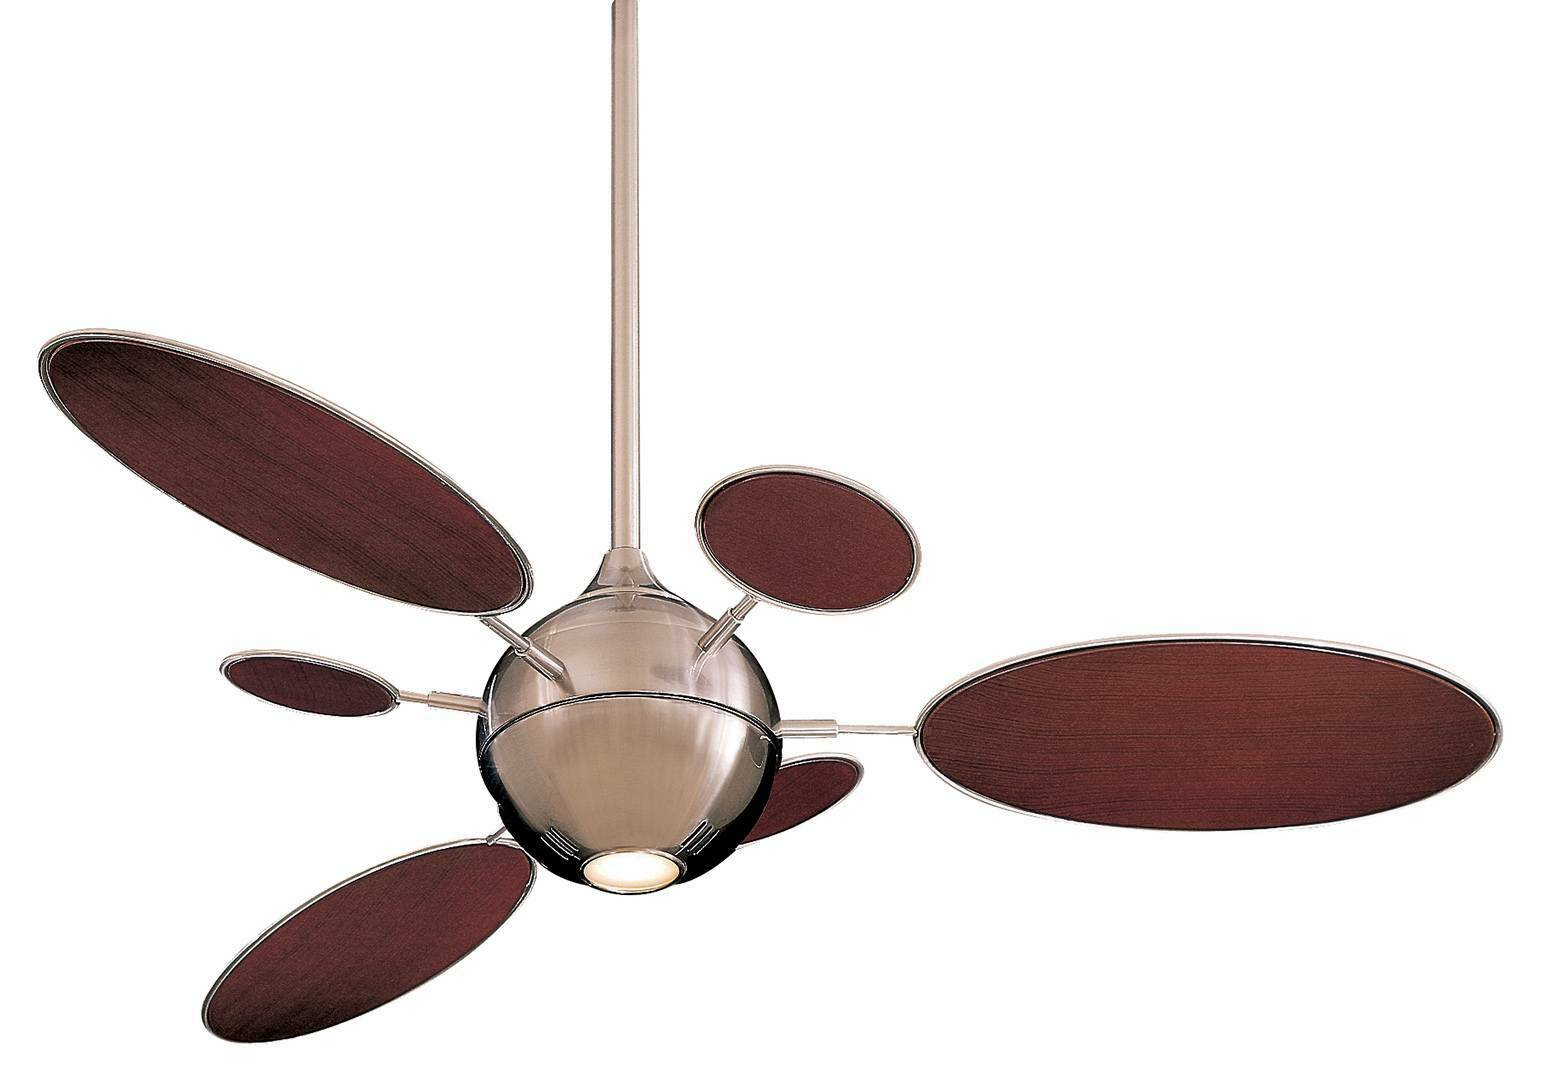 Contemporary Ceiling Fans Brushed Nickel Minka Aire F596 Bn Cirque Brushed Nickel 54 Quot Contemporary